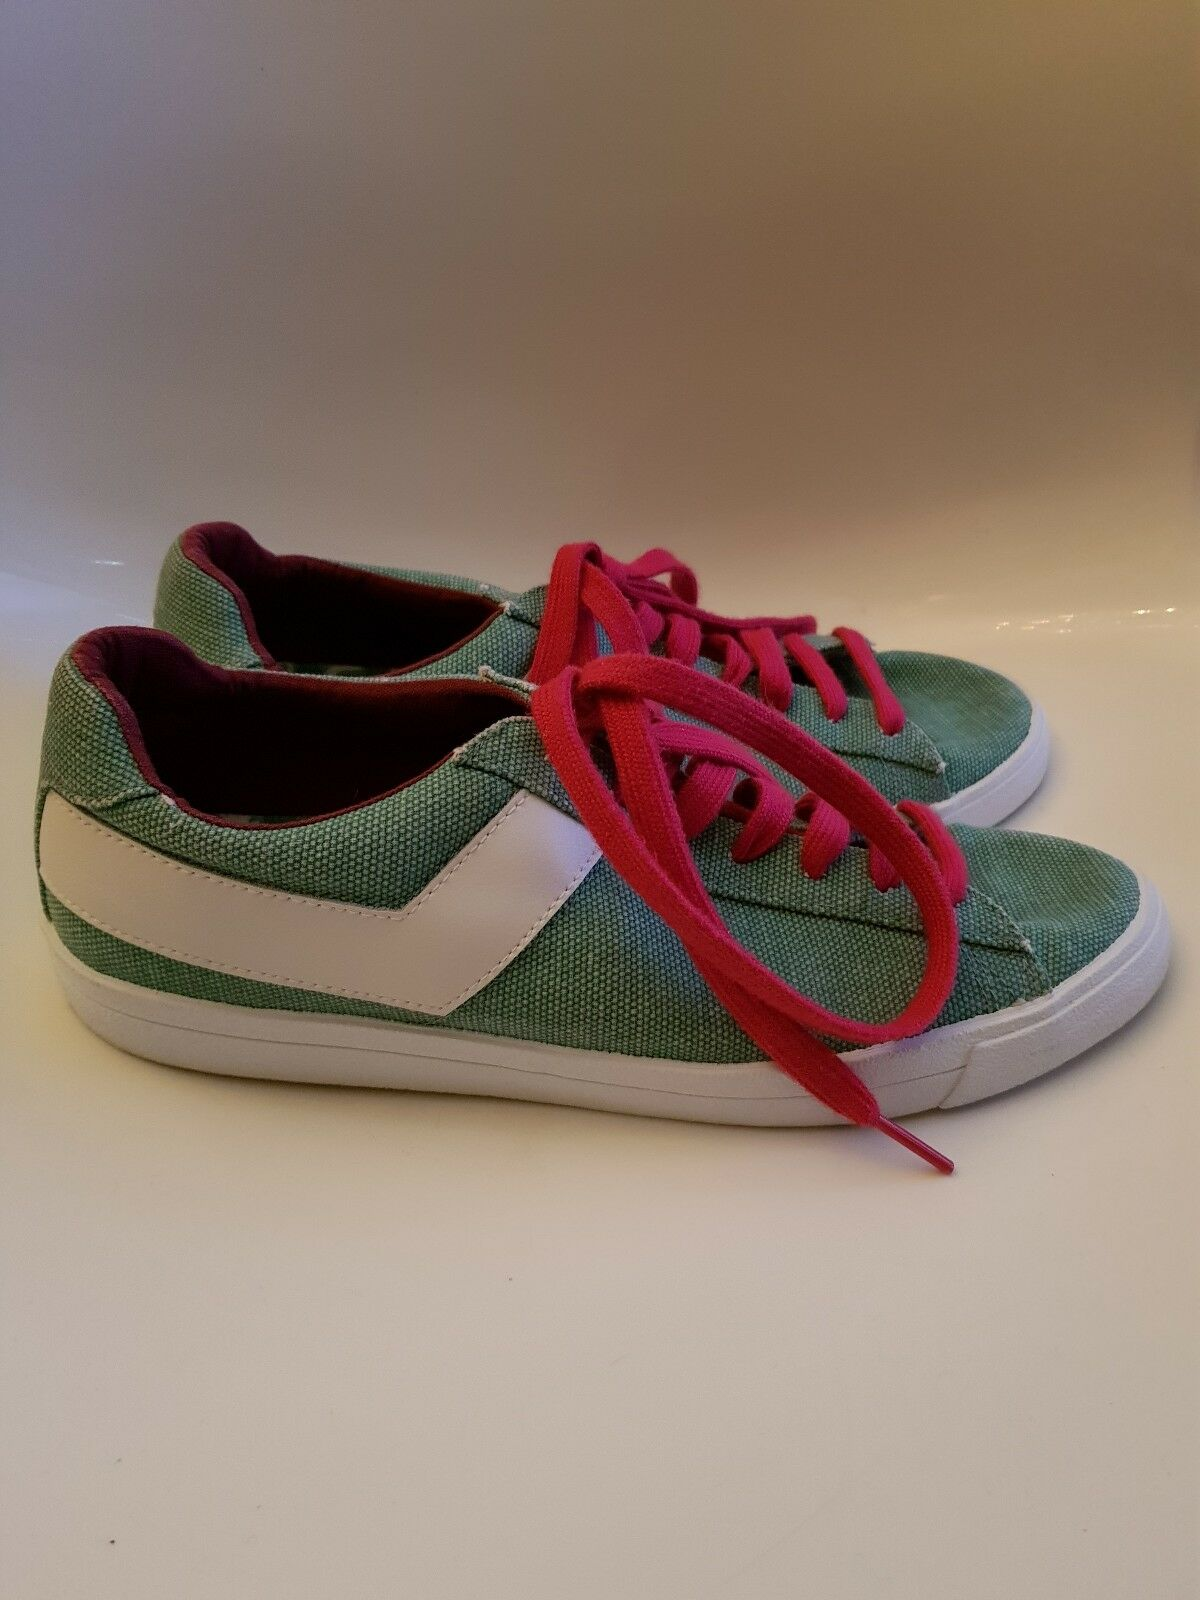 Vintage Retro Style Mens Ladies PONY Canvas Trainers, Green with Red Laces